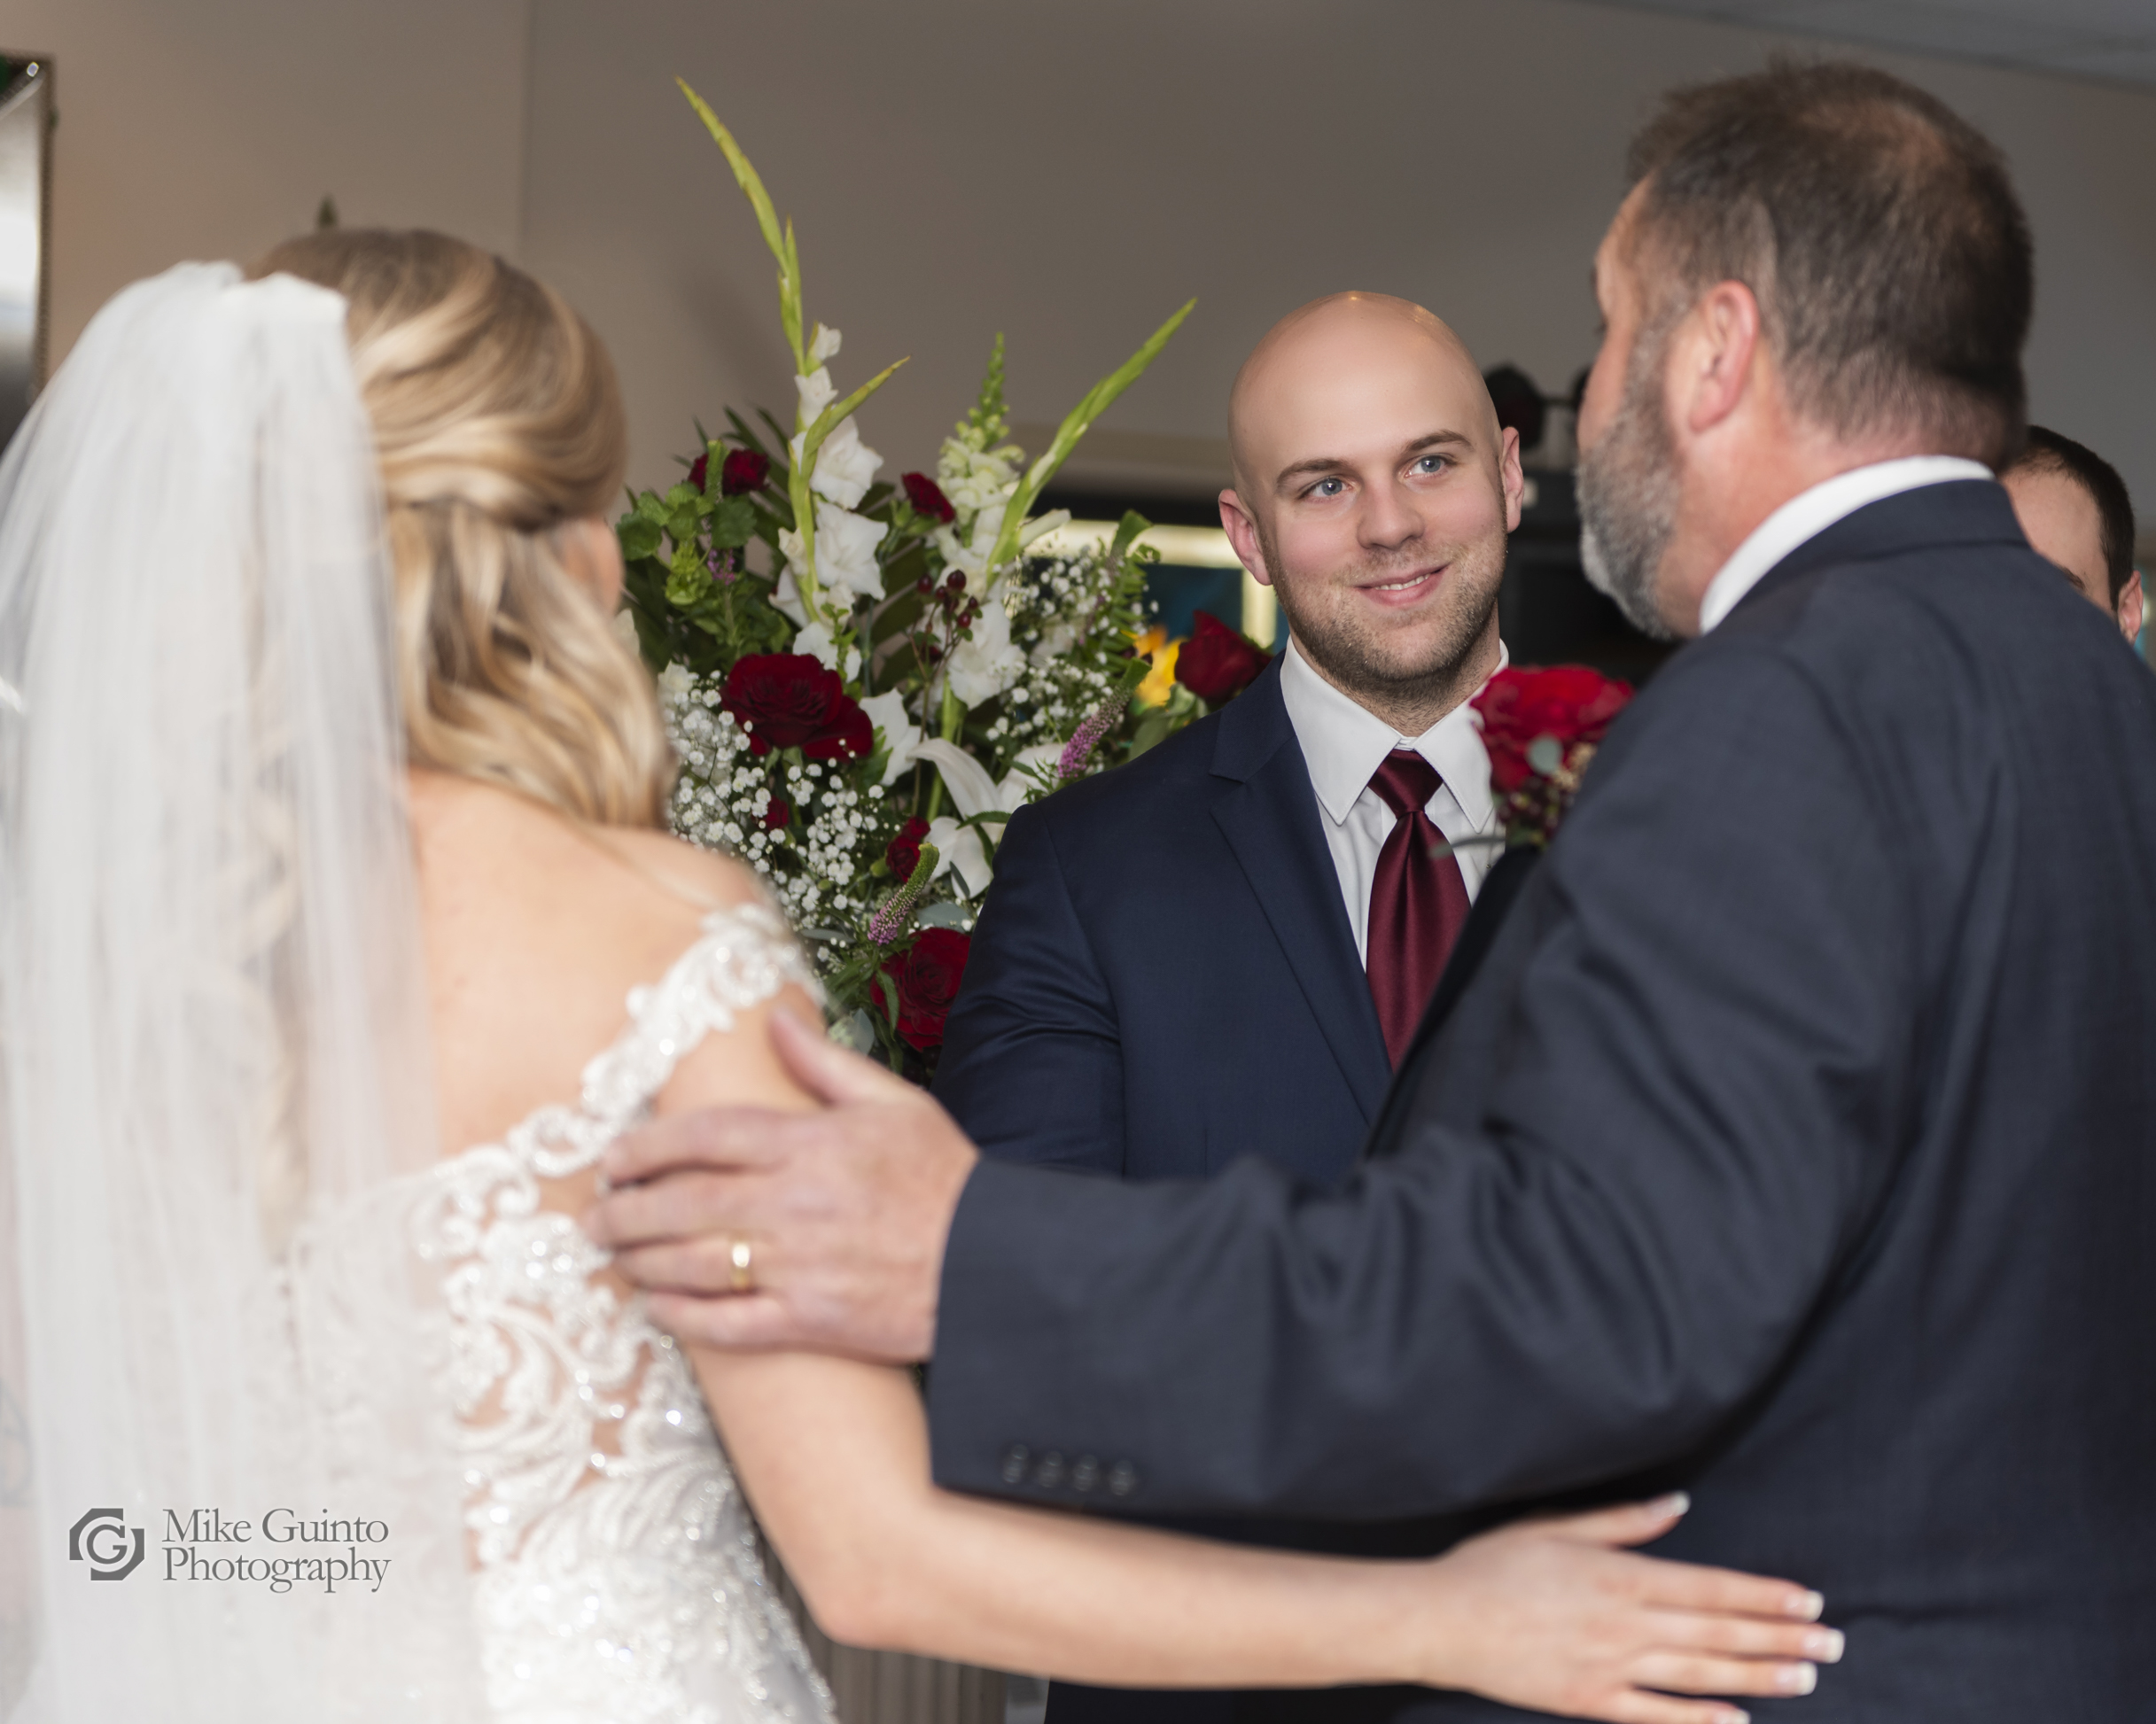 20190223_Wedding_Jaworski_261.jpg